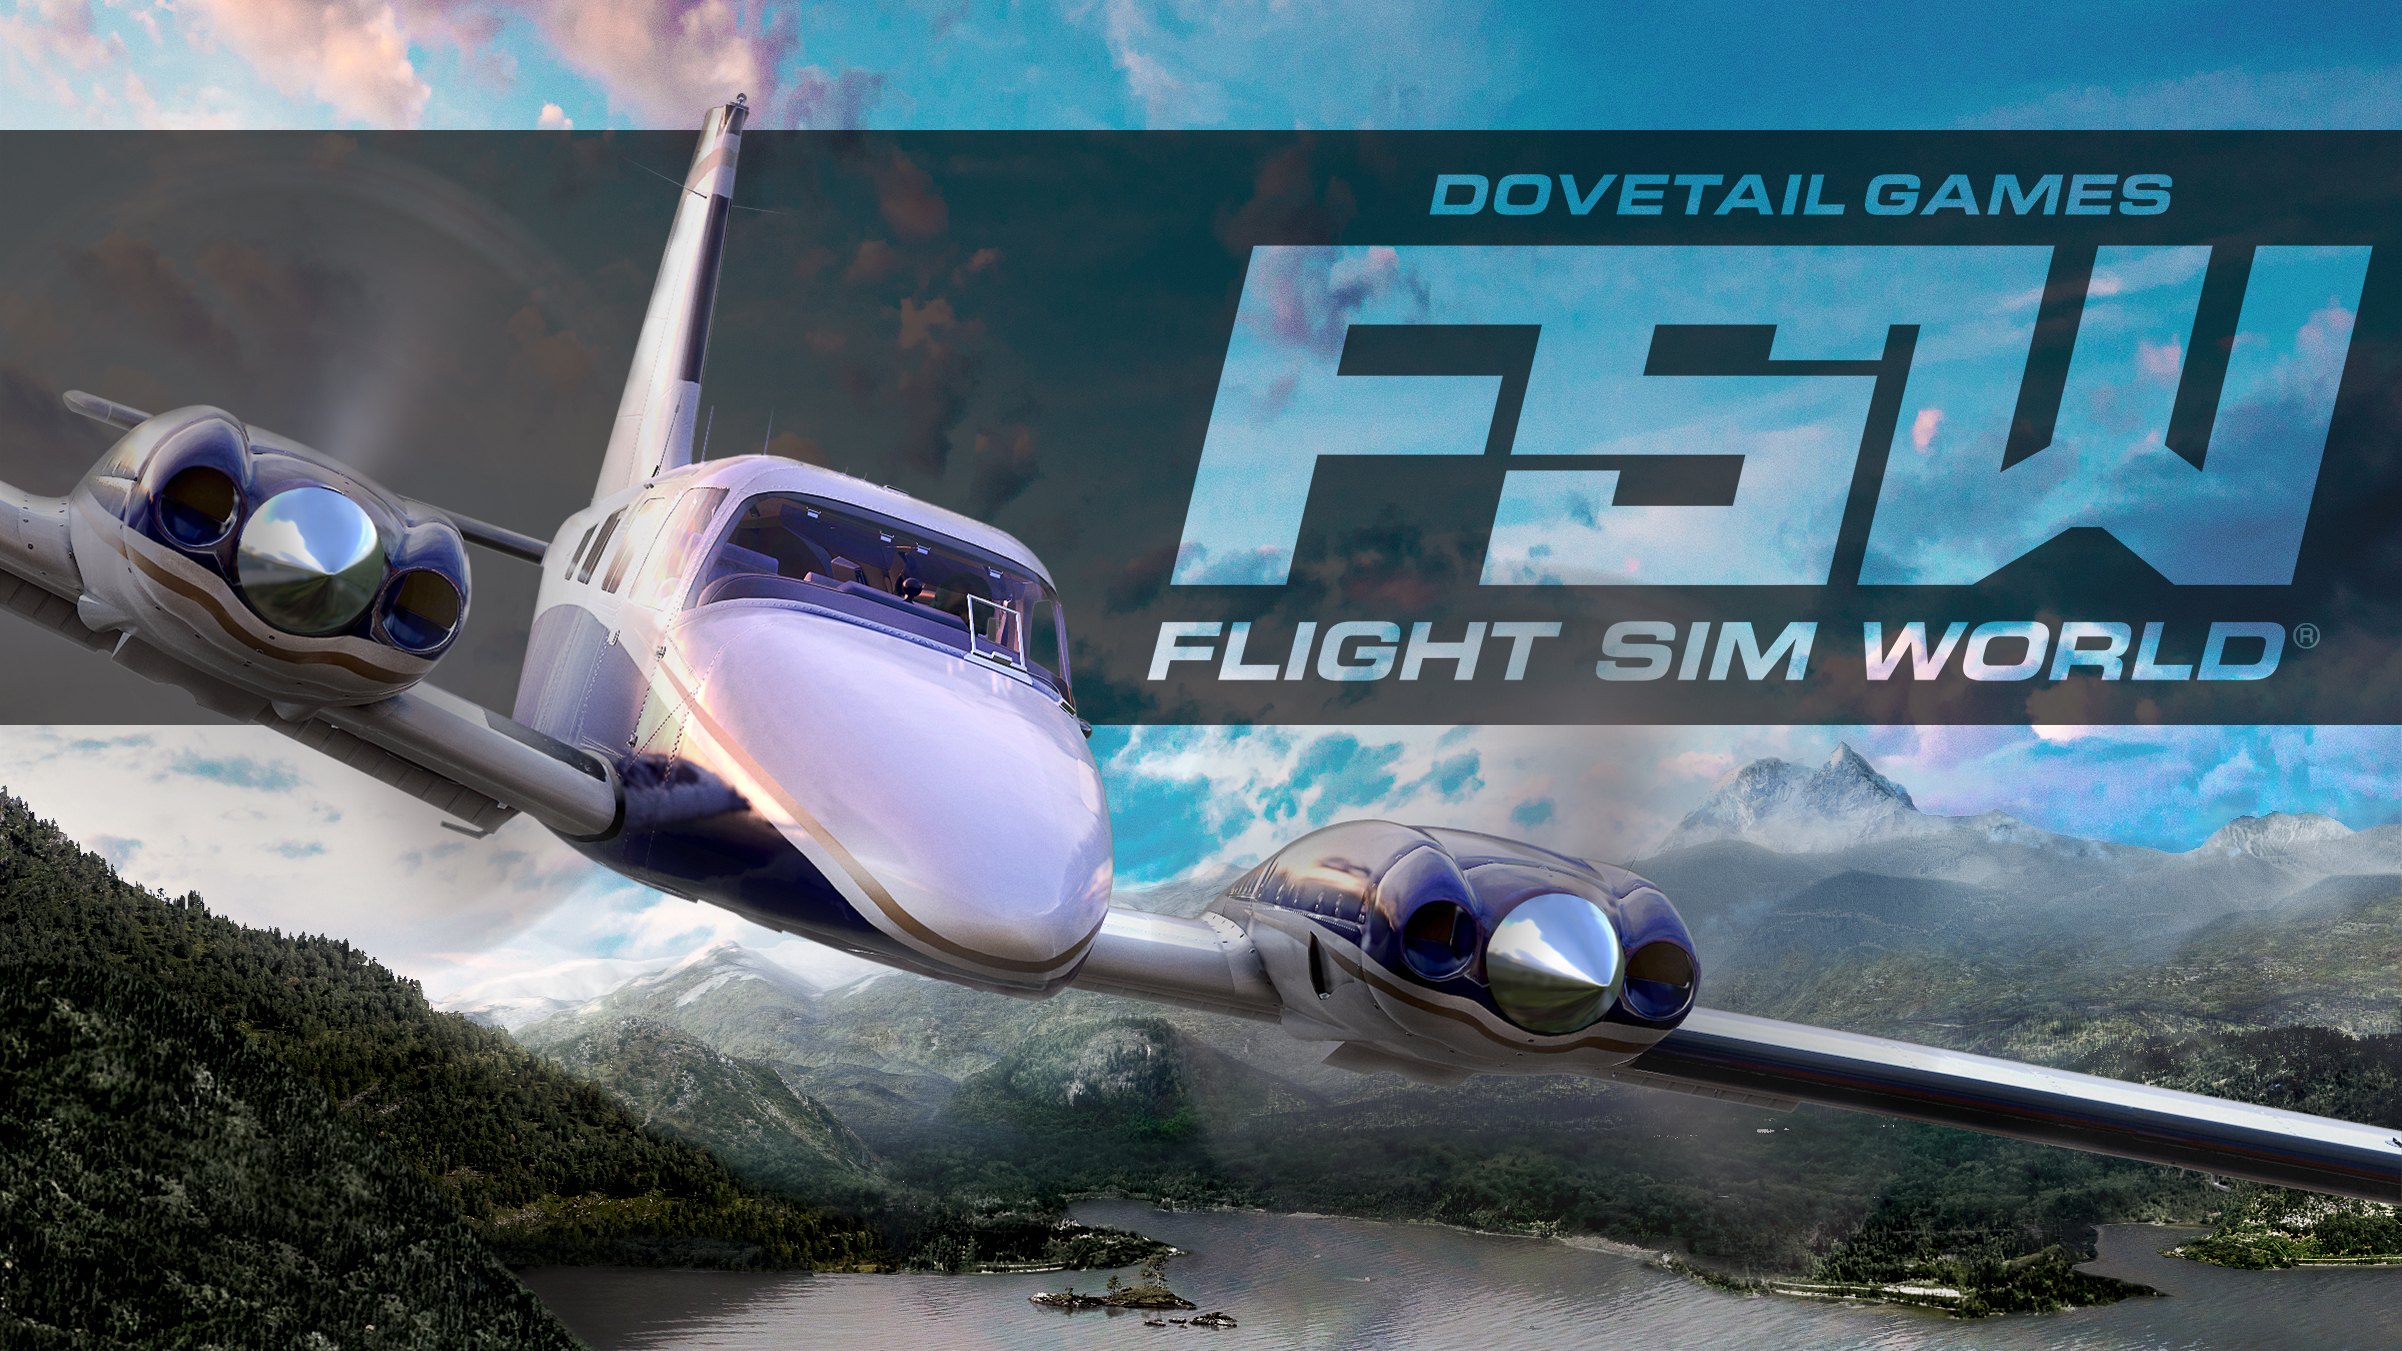 DTG Flight Sim World Logo